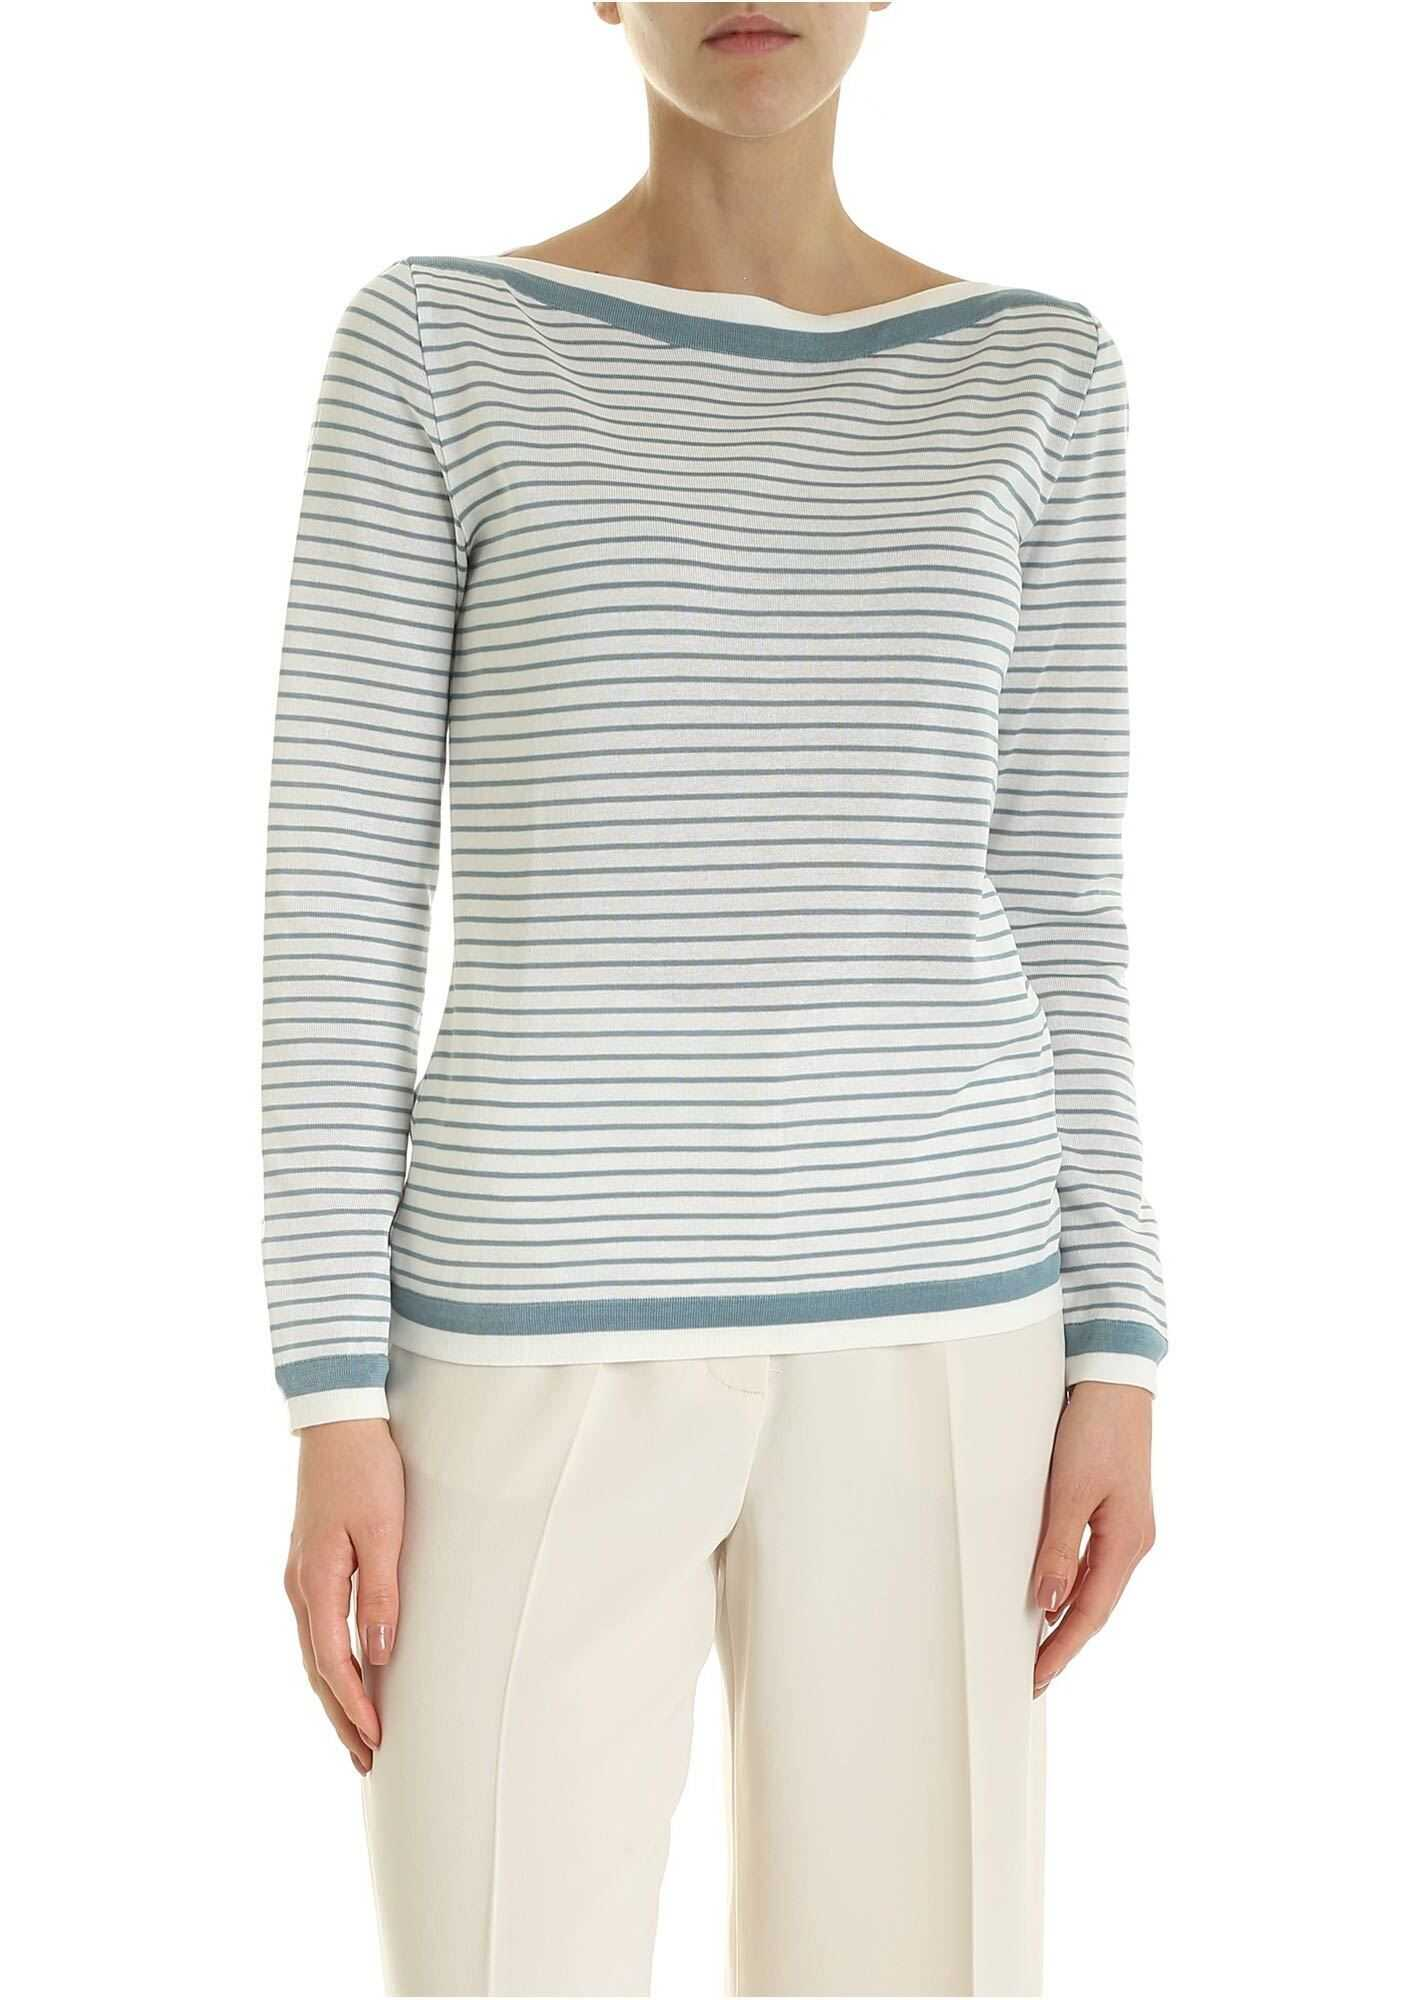 Max Mara Ugolina Sweater In White And Pale Blue Color White